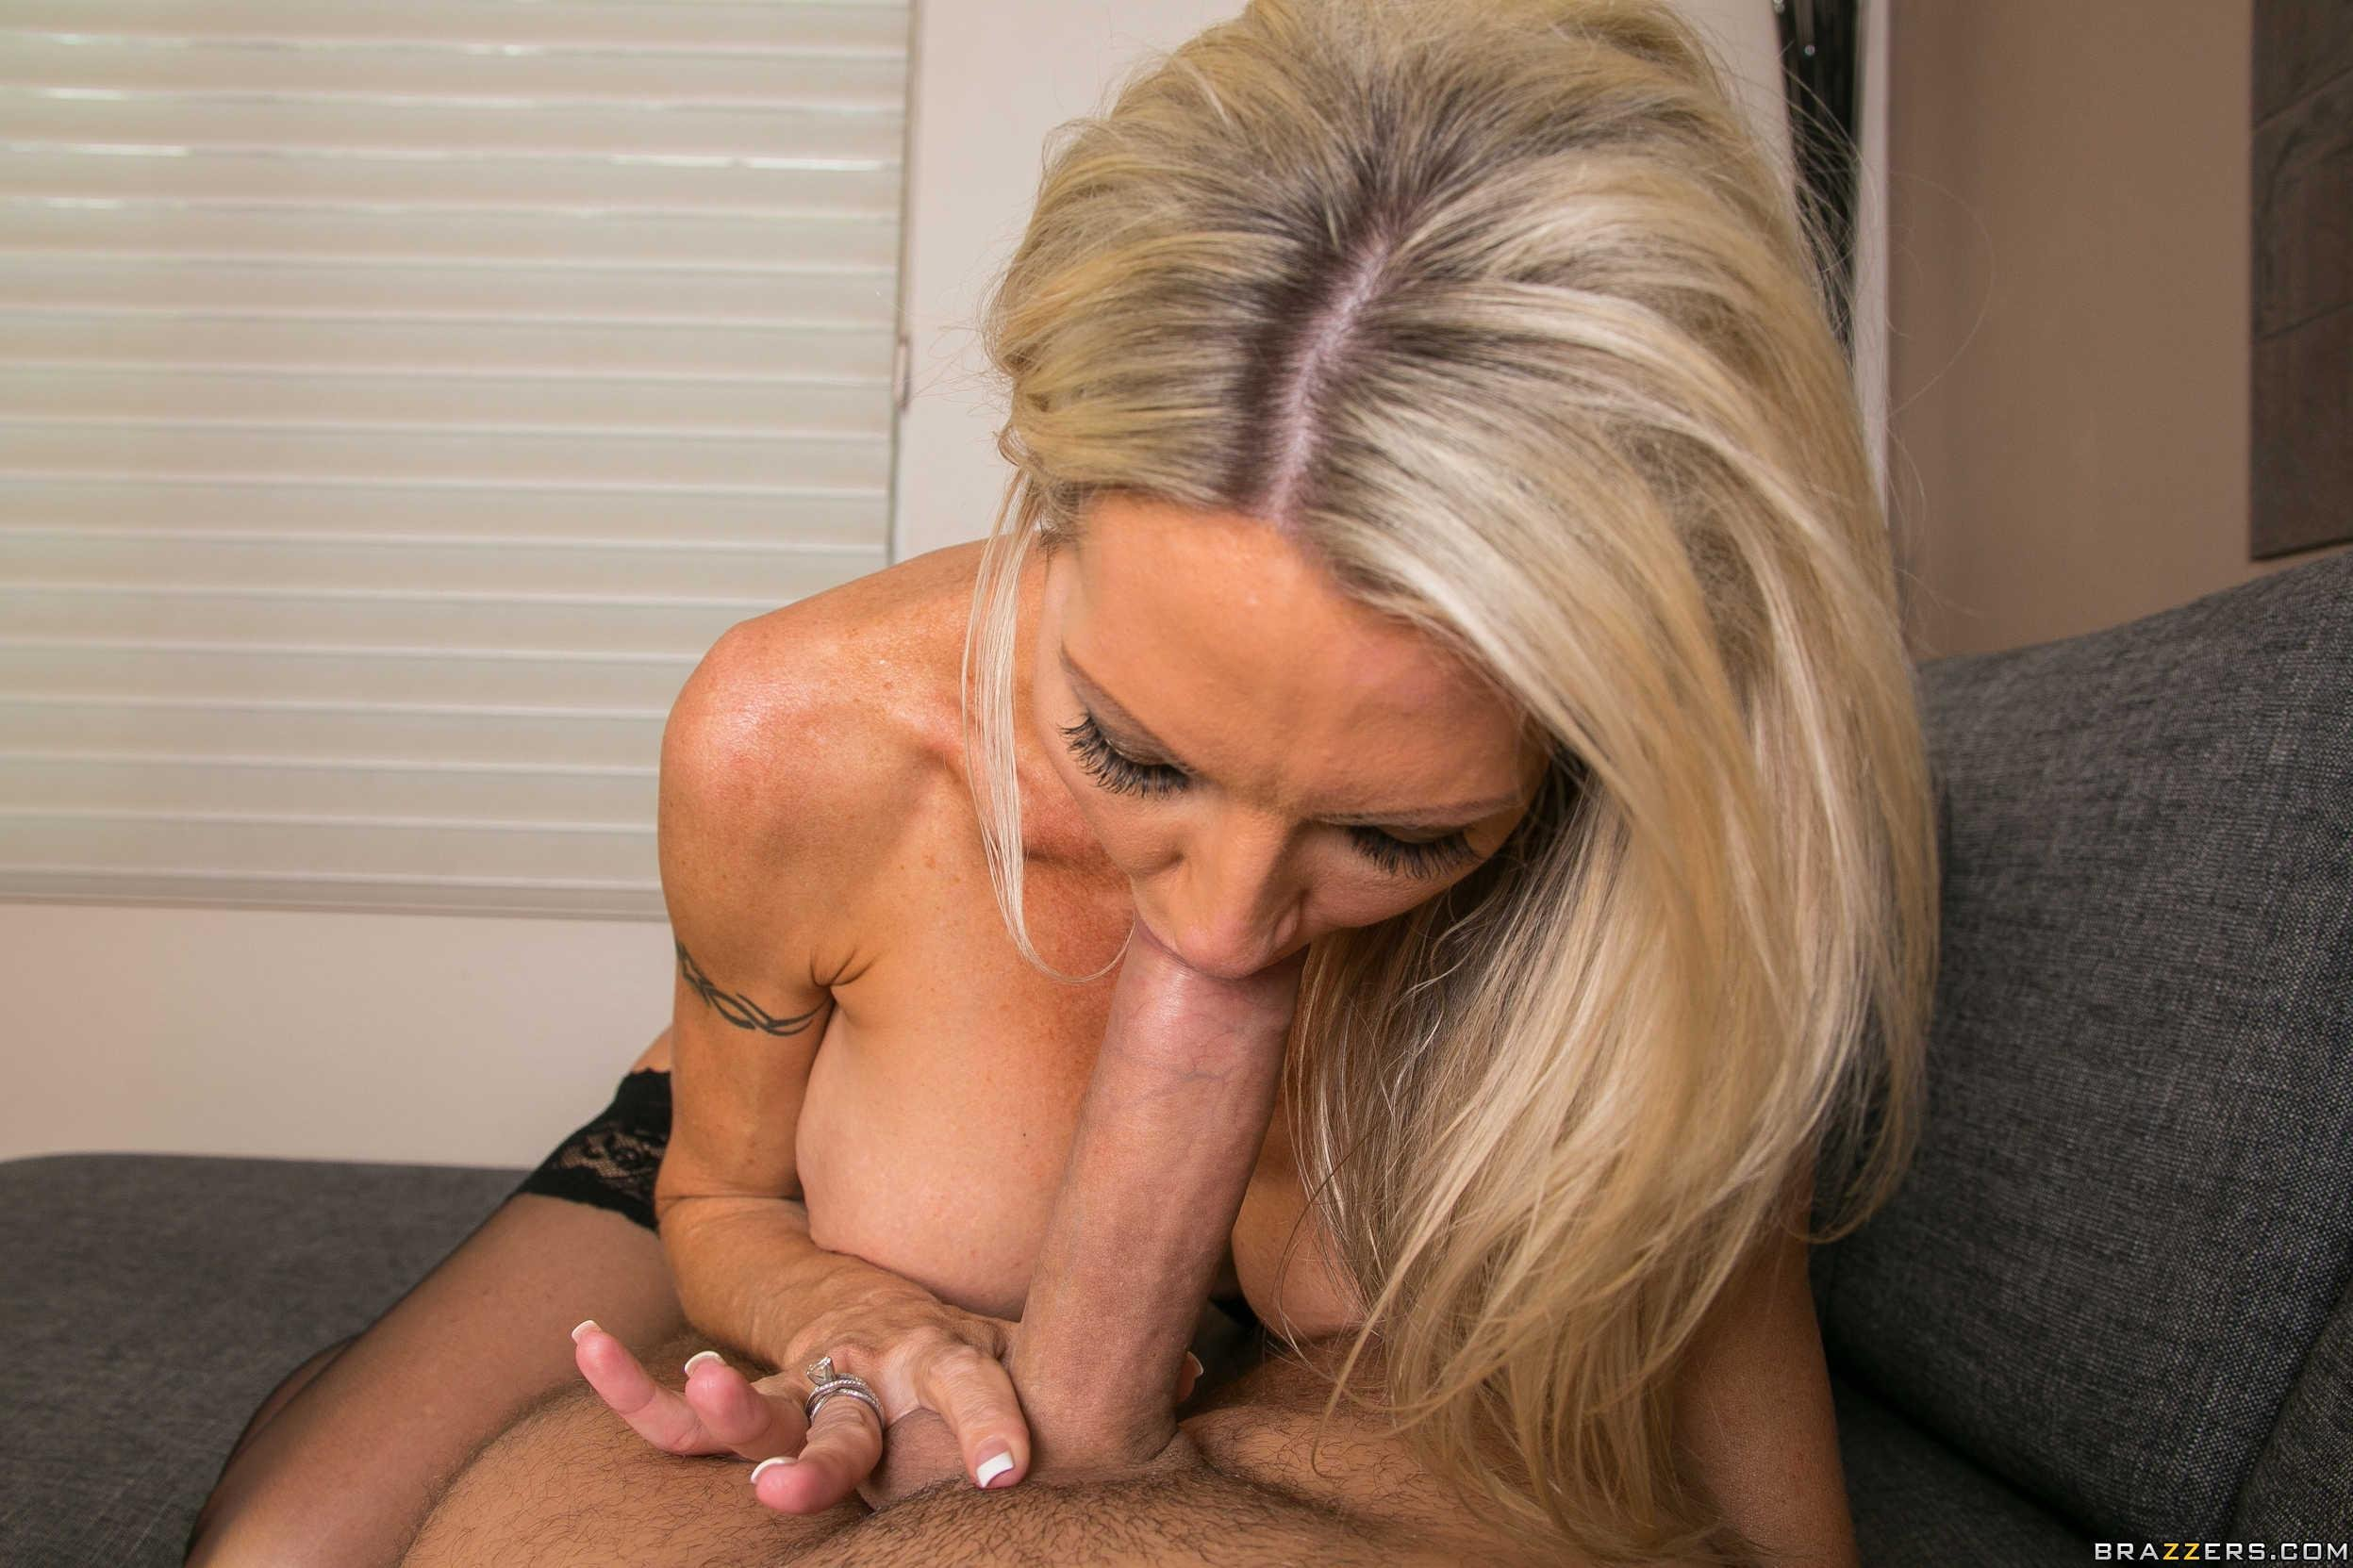 Goldie on a dildo